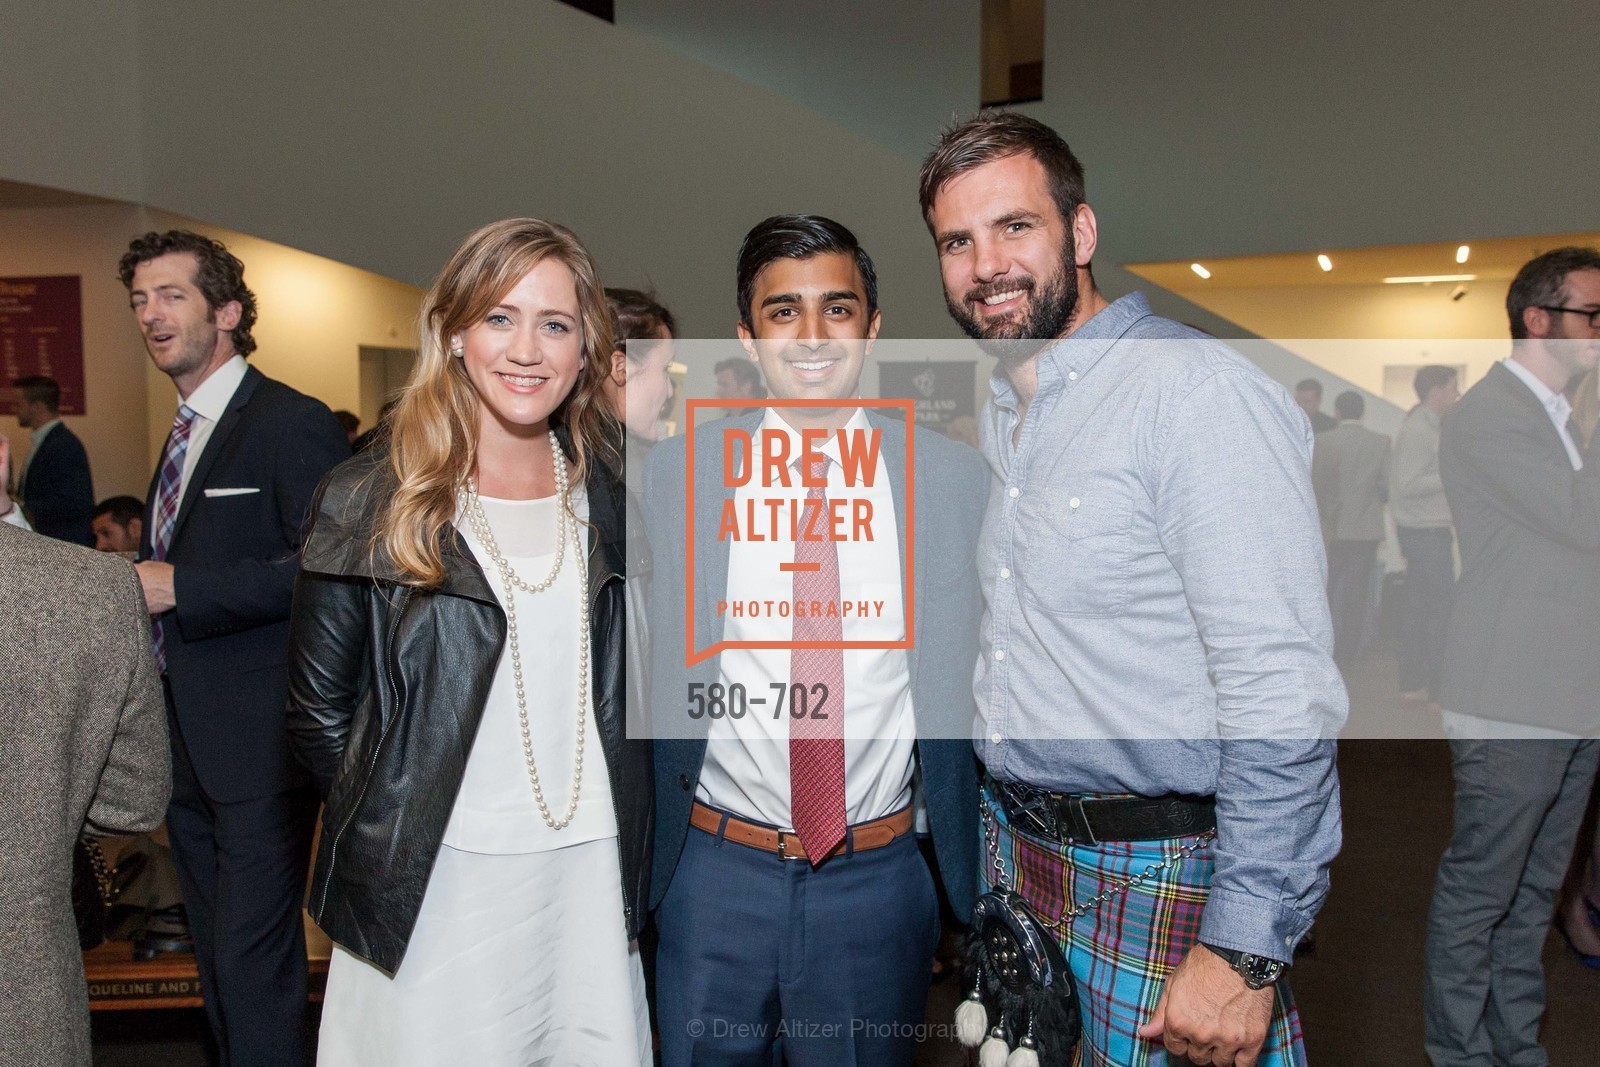 Caroline Langley, Rishi Dixit, William Lipp, ARTPOINT:  Masterpieces from the National Galleries of Scotland and Scotch Tastings, US, May 7th, 2015,Drew Altizer, Drew Altizer Photography, full-service agency, private events, San Francisco photographer, photographer california